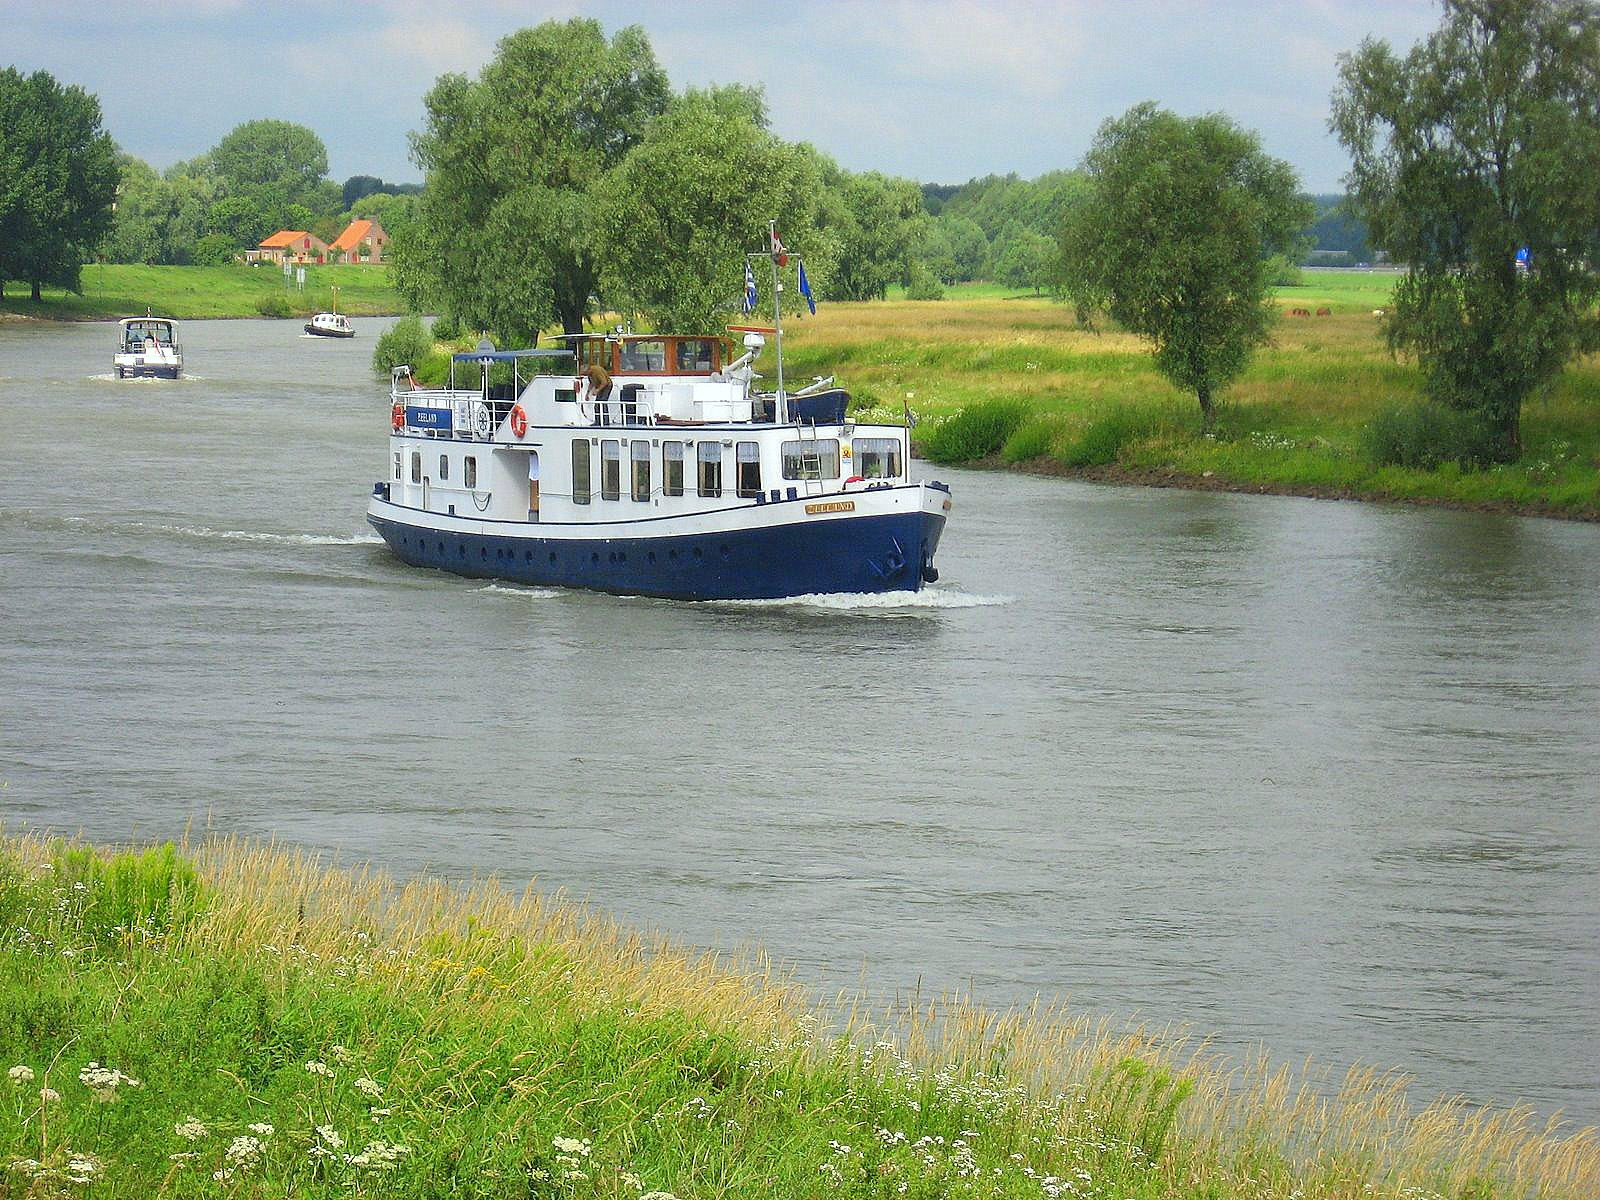 The Zeeland on the Ijssel